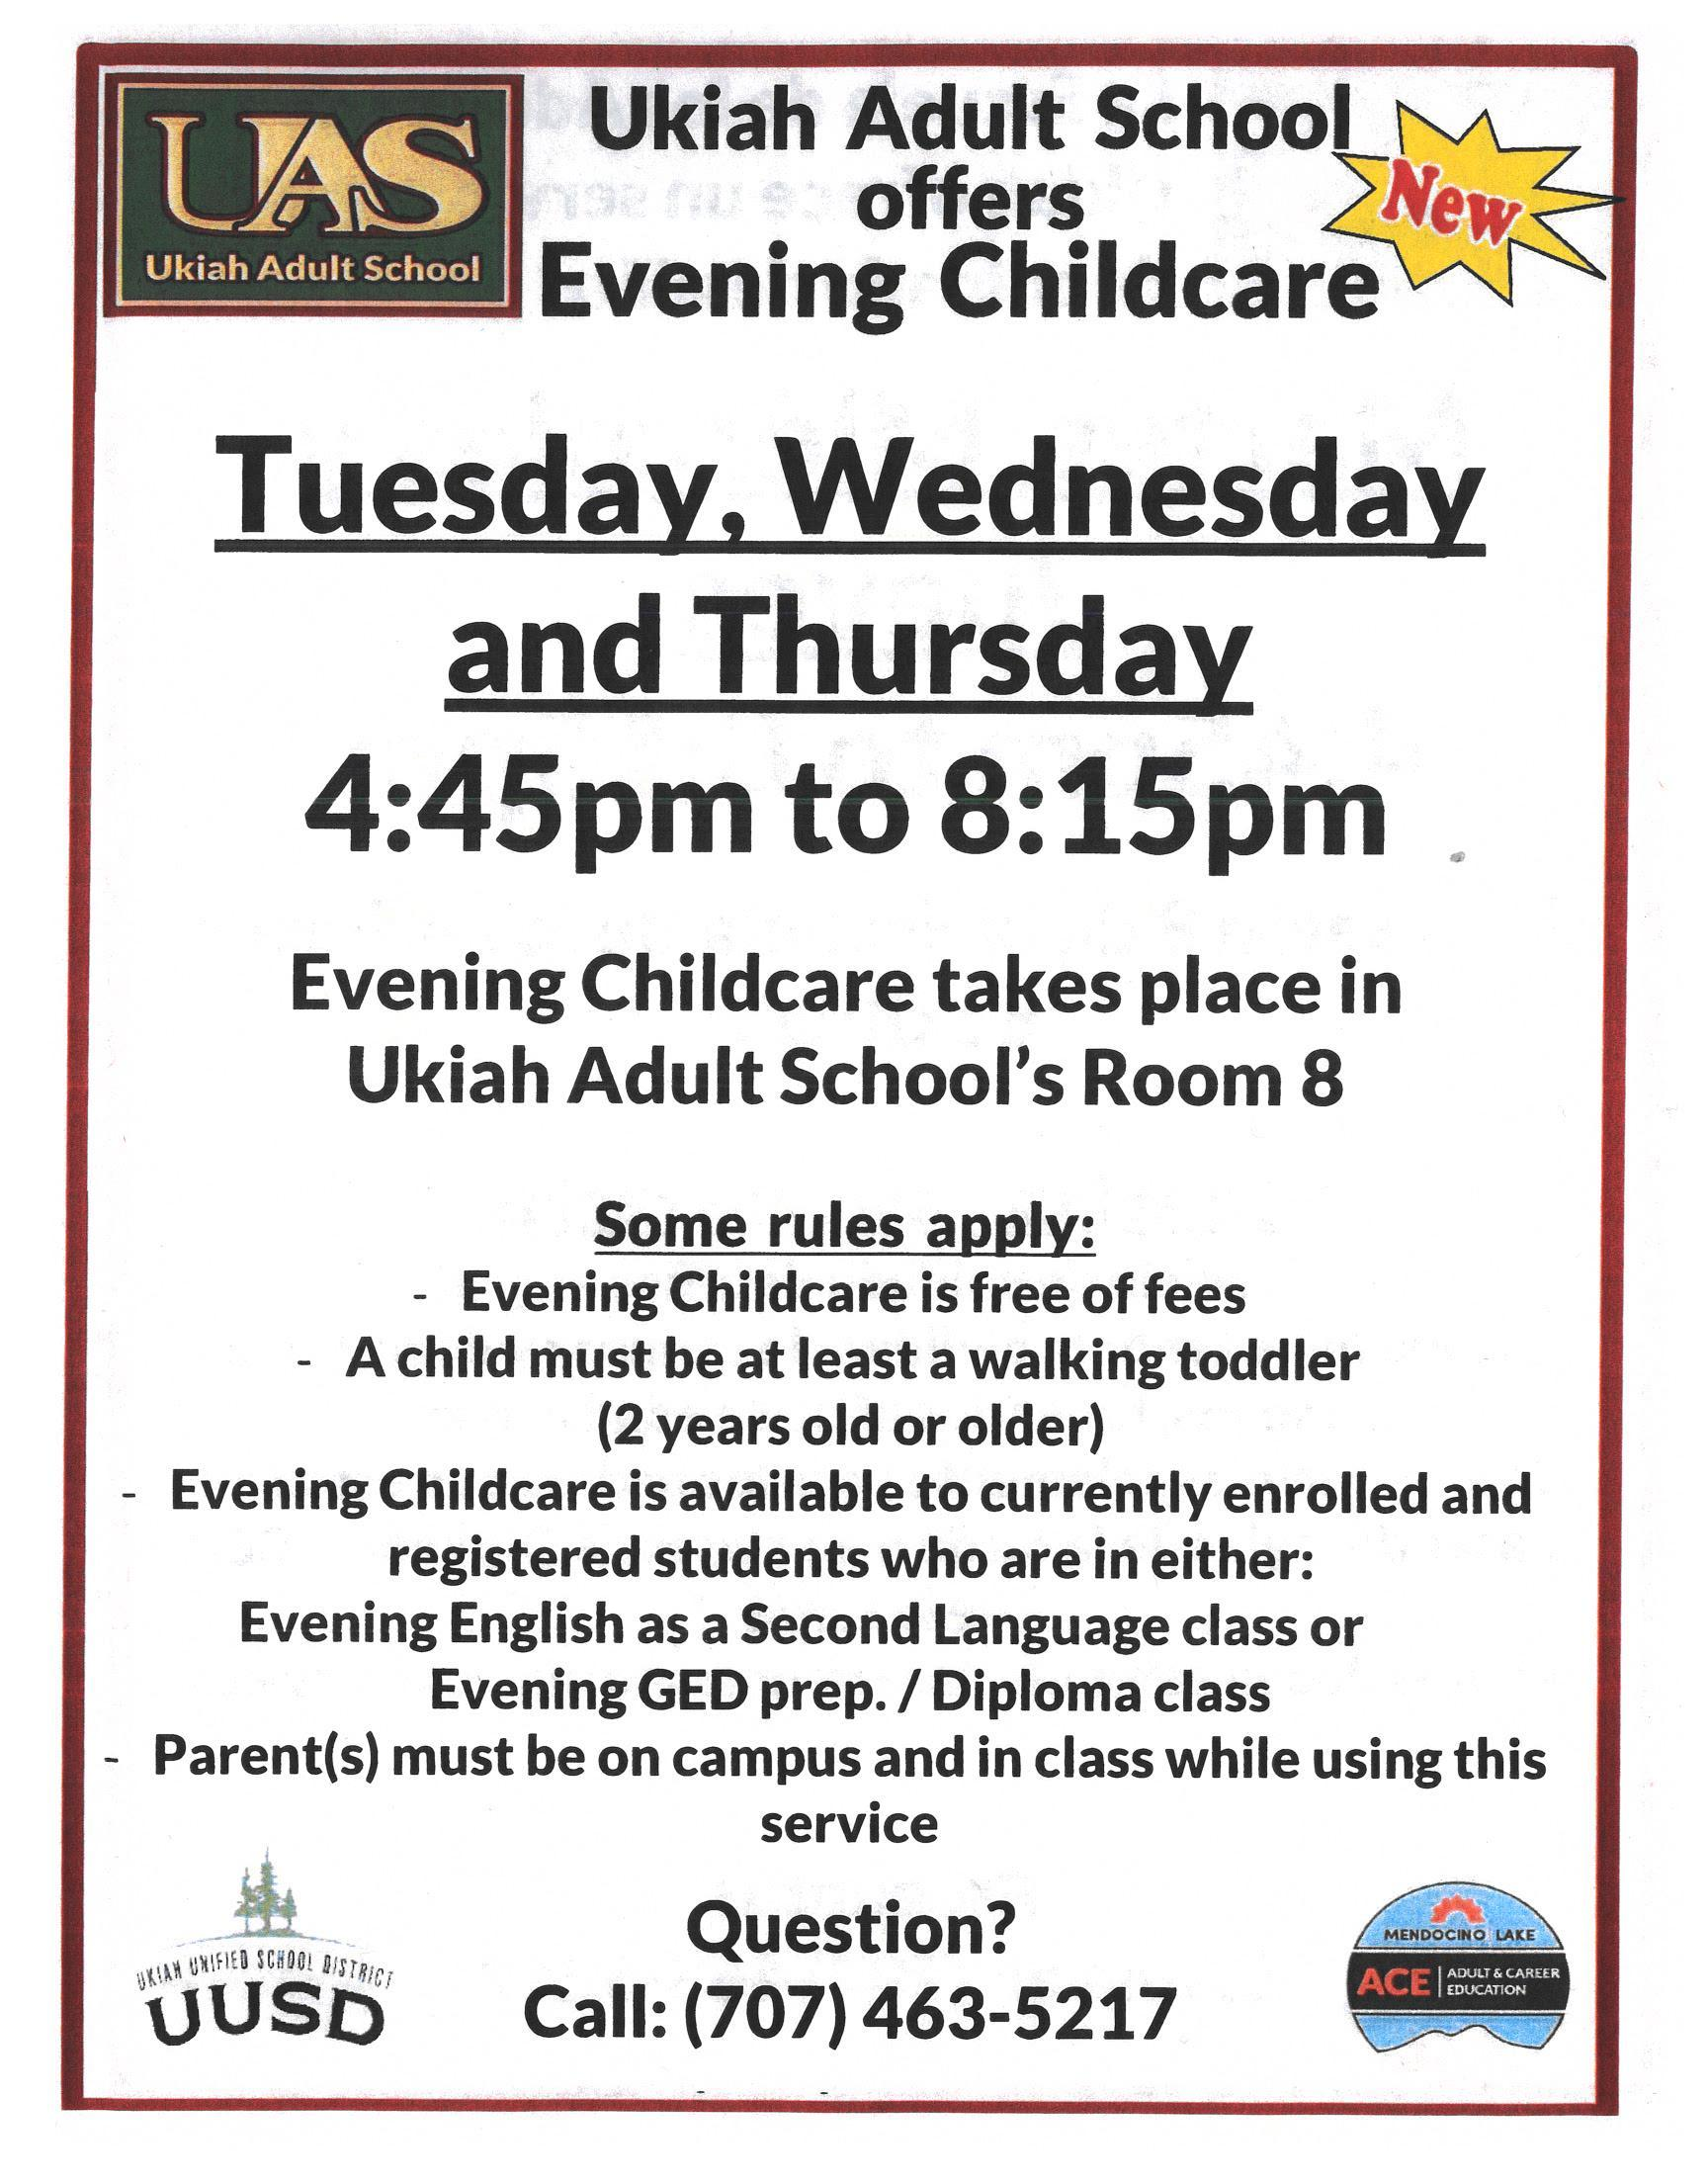 Ukiah Adult School offers free Evening Childcare, Tuesday, WEdnesday and Thursday, 4:45pm to 8:15pm (poster)